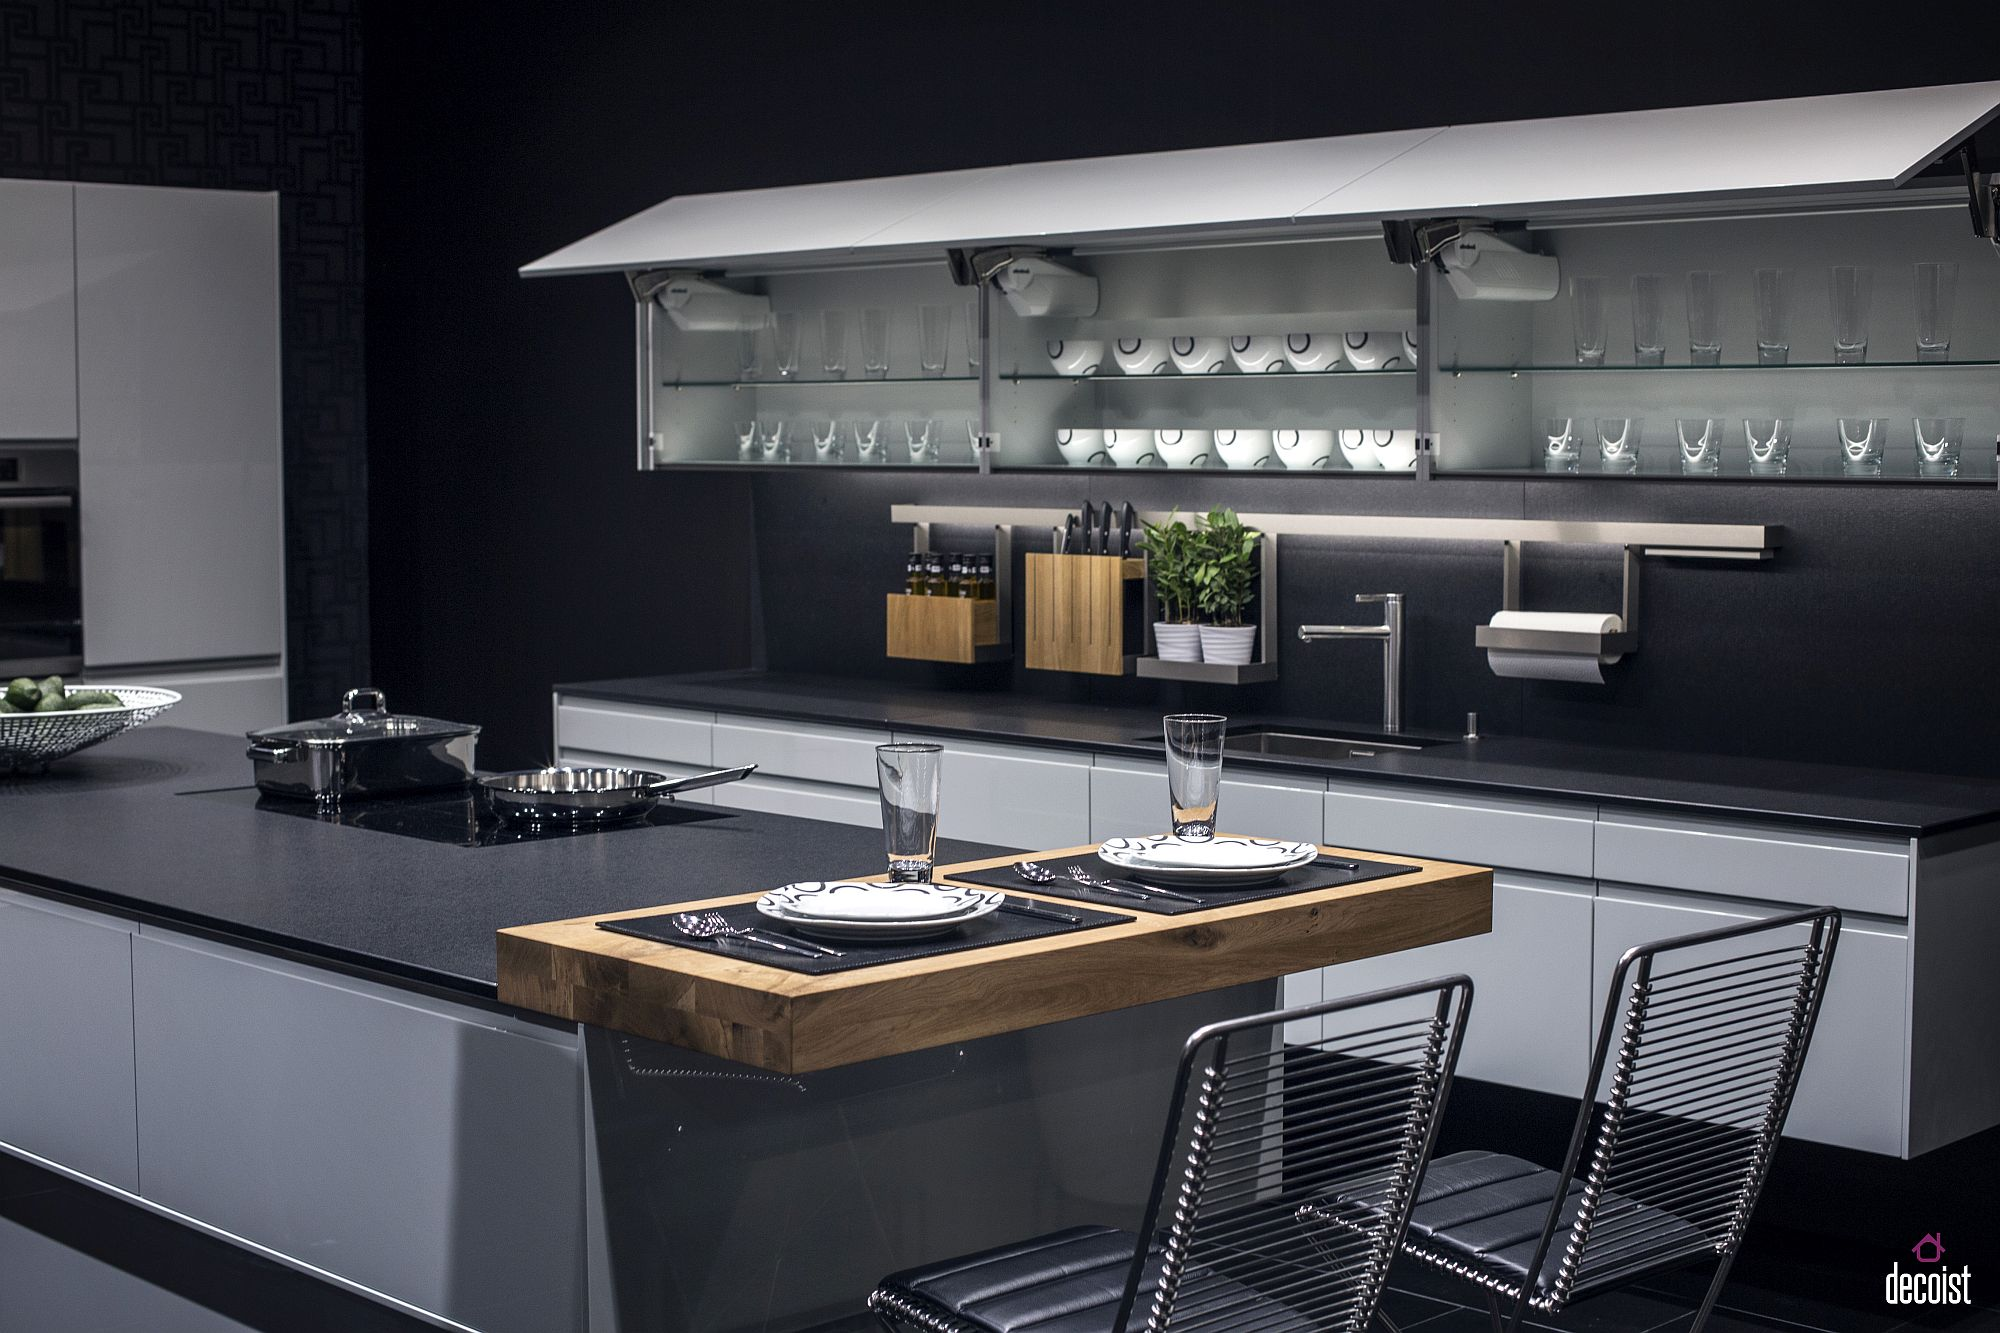 Bluish-gray gives the kitchen a refined and inviting look